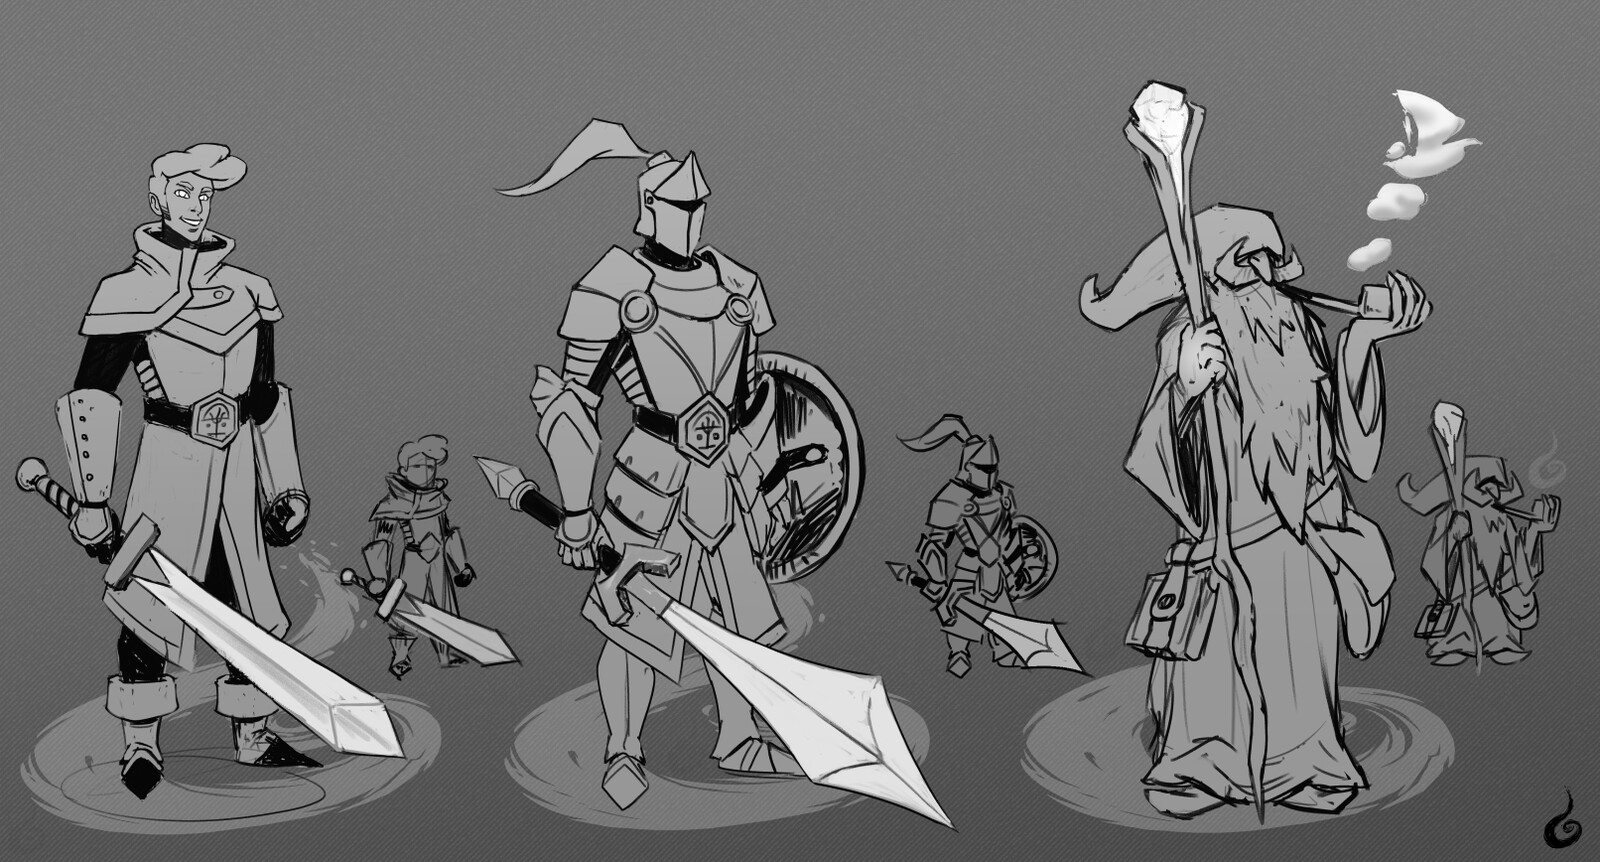 Some concepts